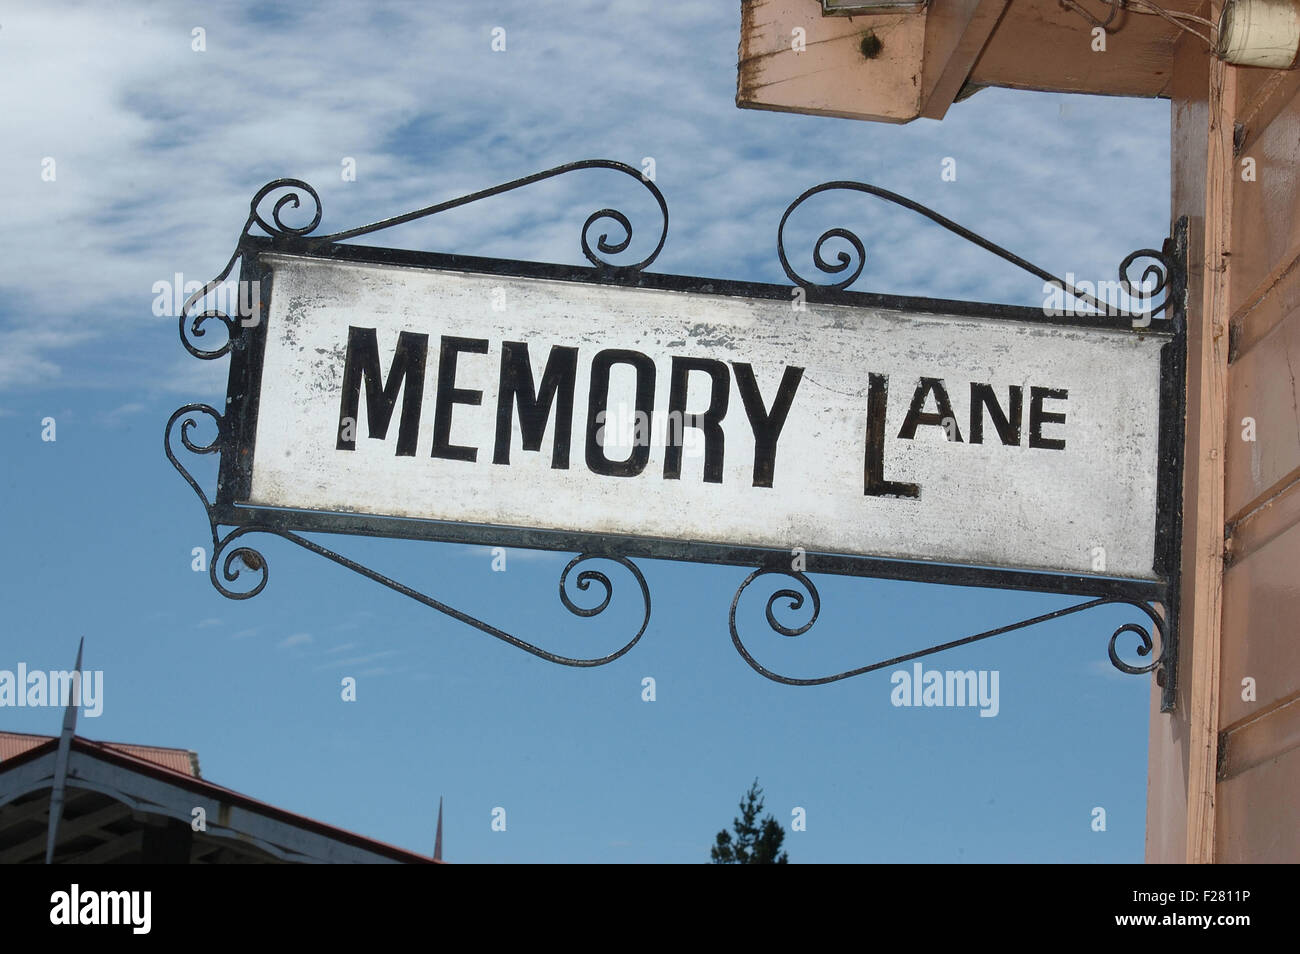 Ornate street sign pour Memory Lane, bidonville, Westland, Nouvelle-Zélande Photo Stock